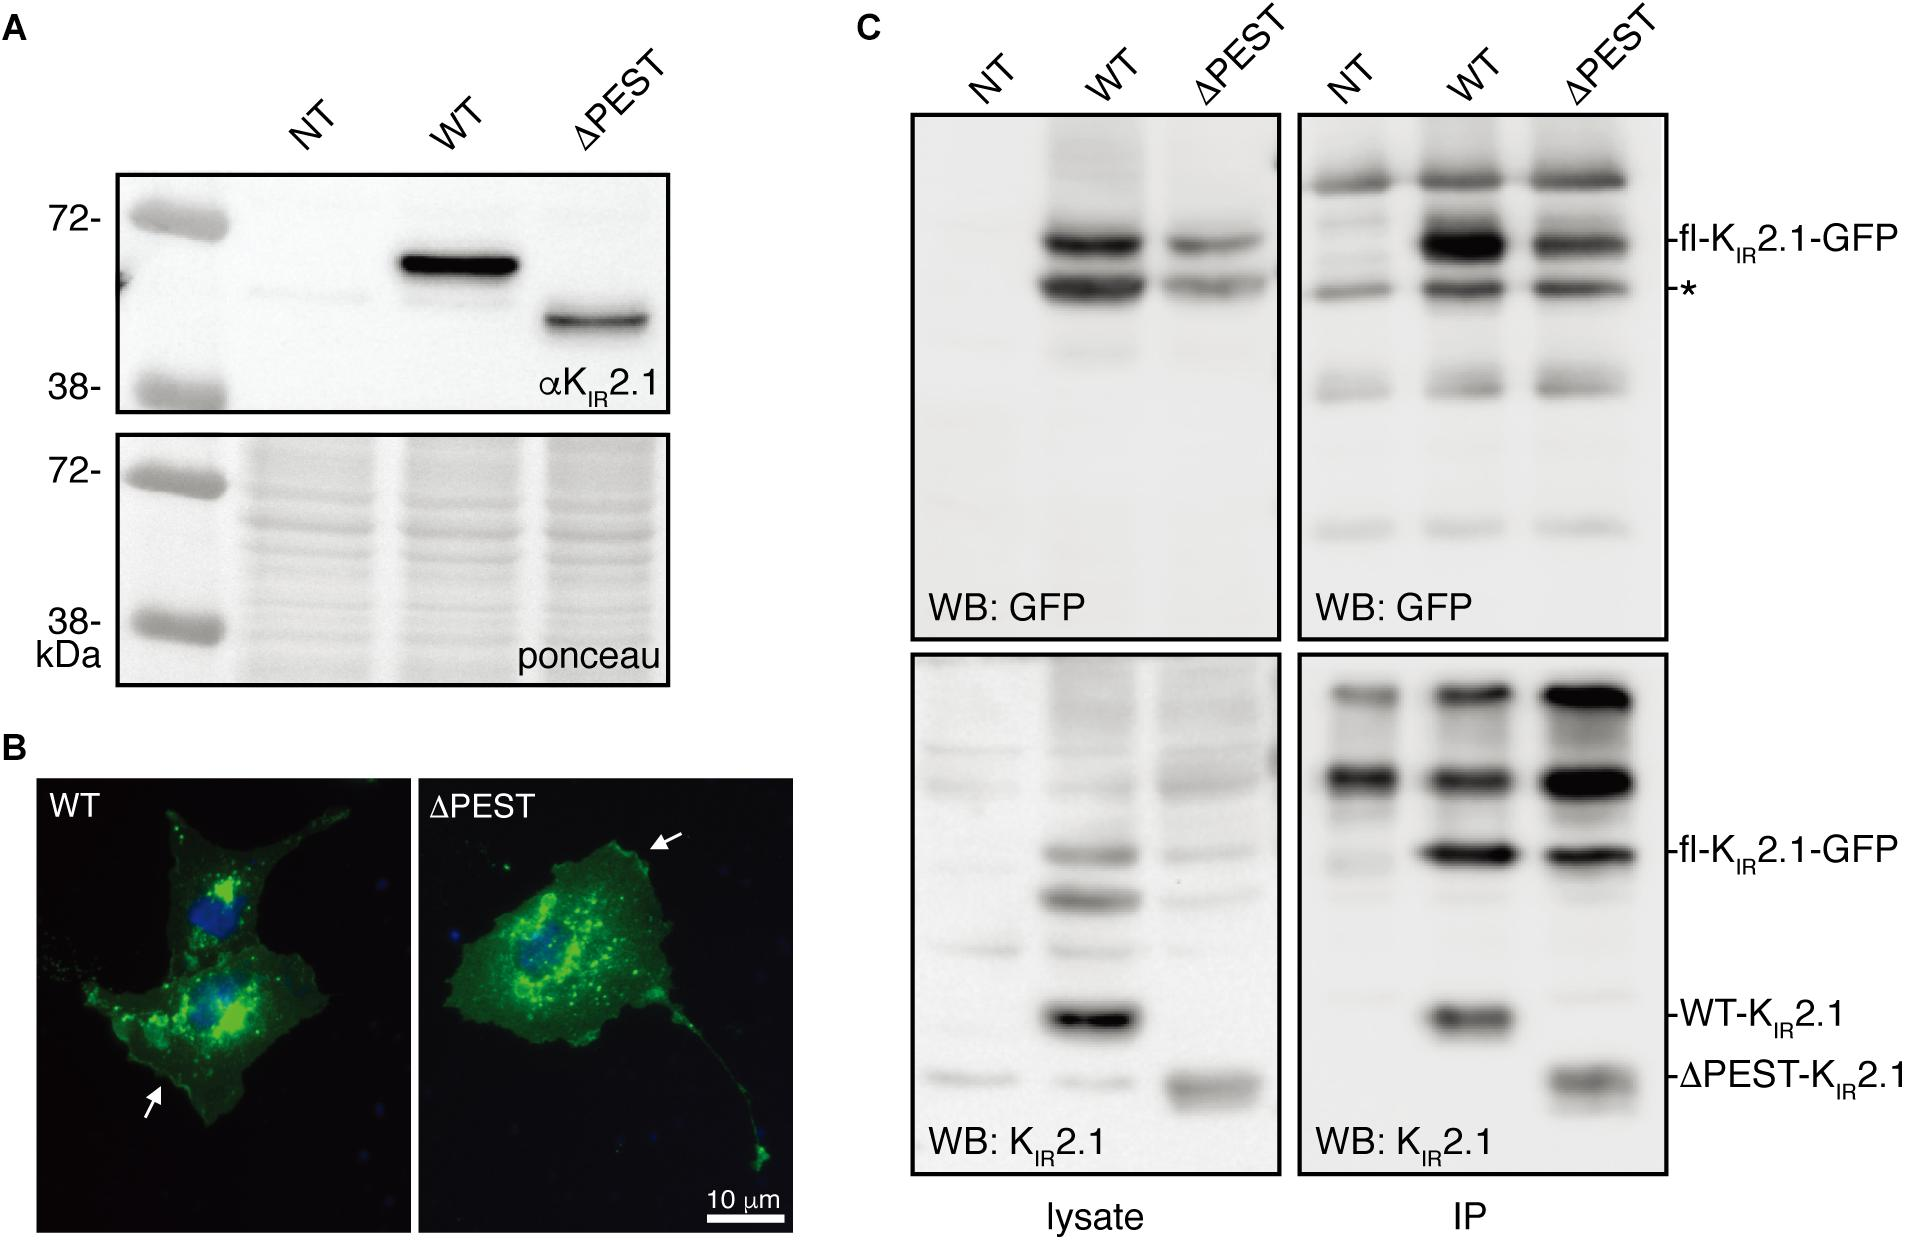 Frontiers | Identification of a PEST Sequence in Vertebrate KIR2 1